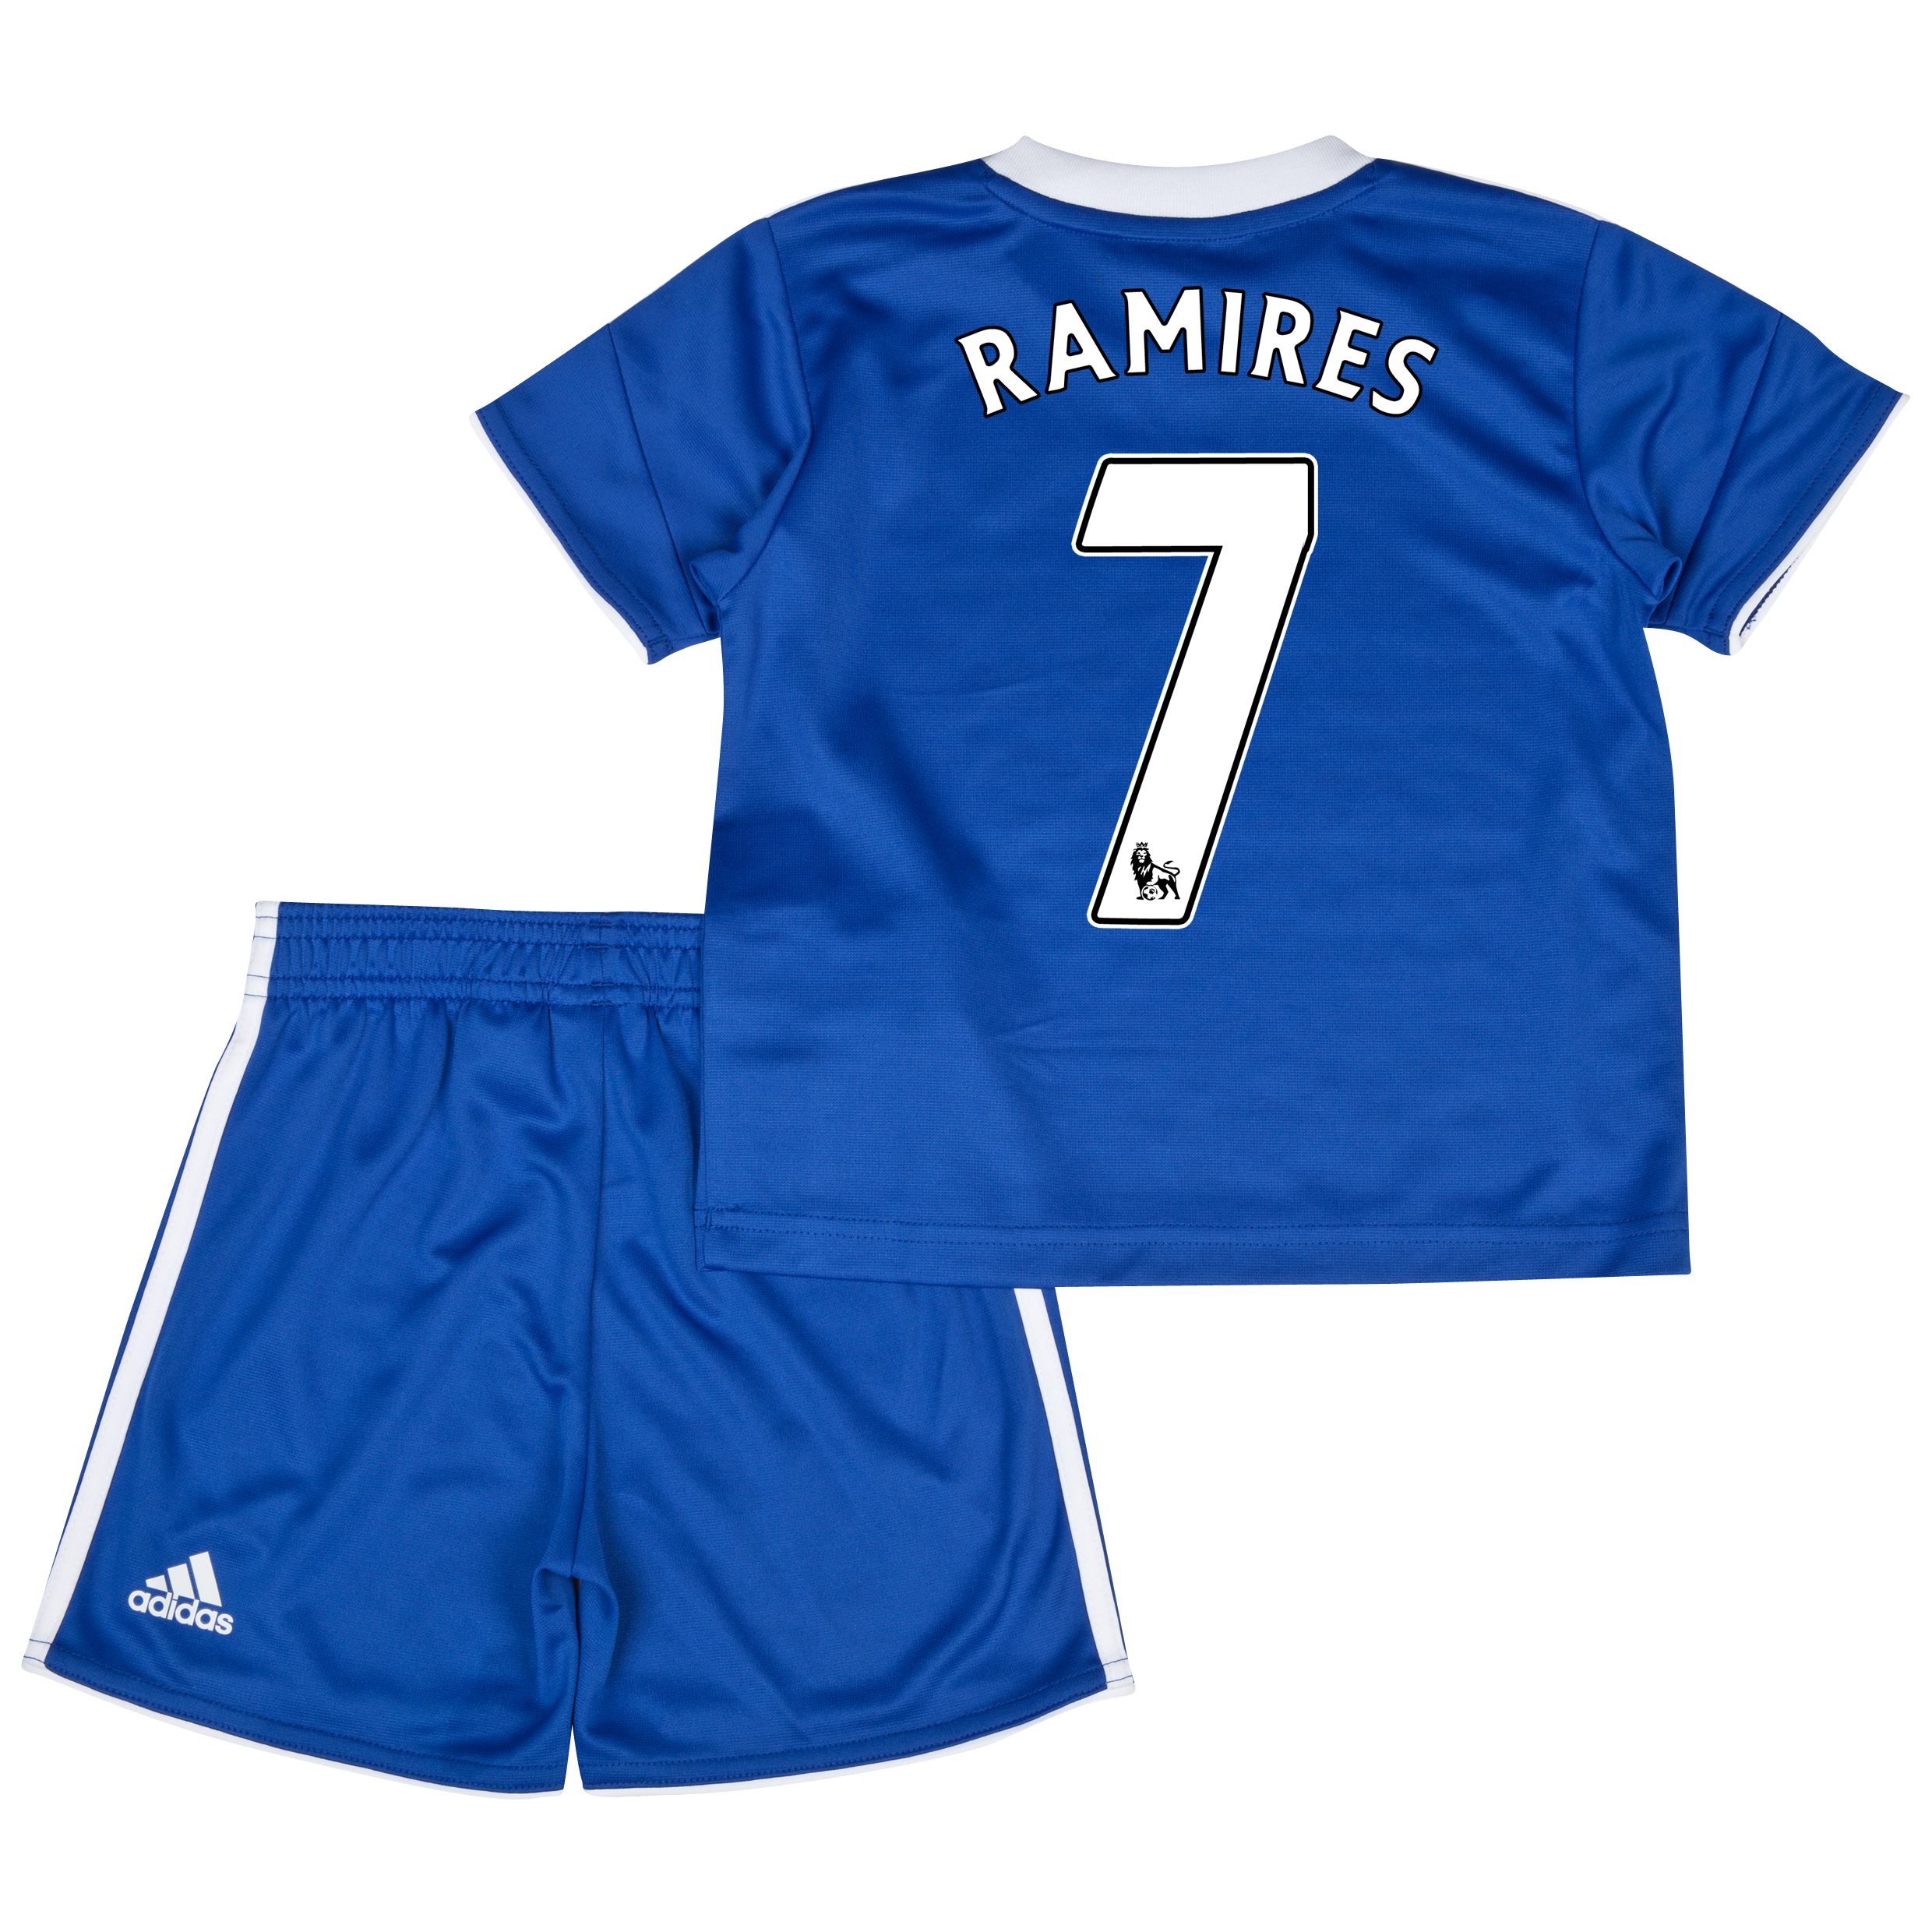 Chelsea Home Mini Kit 2013/14 with Ramires 7 printing